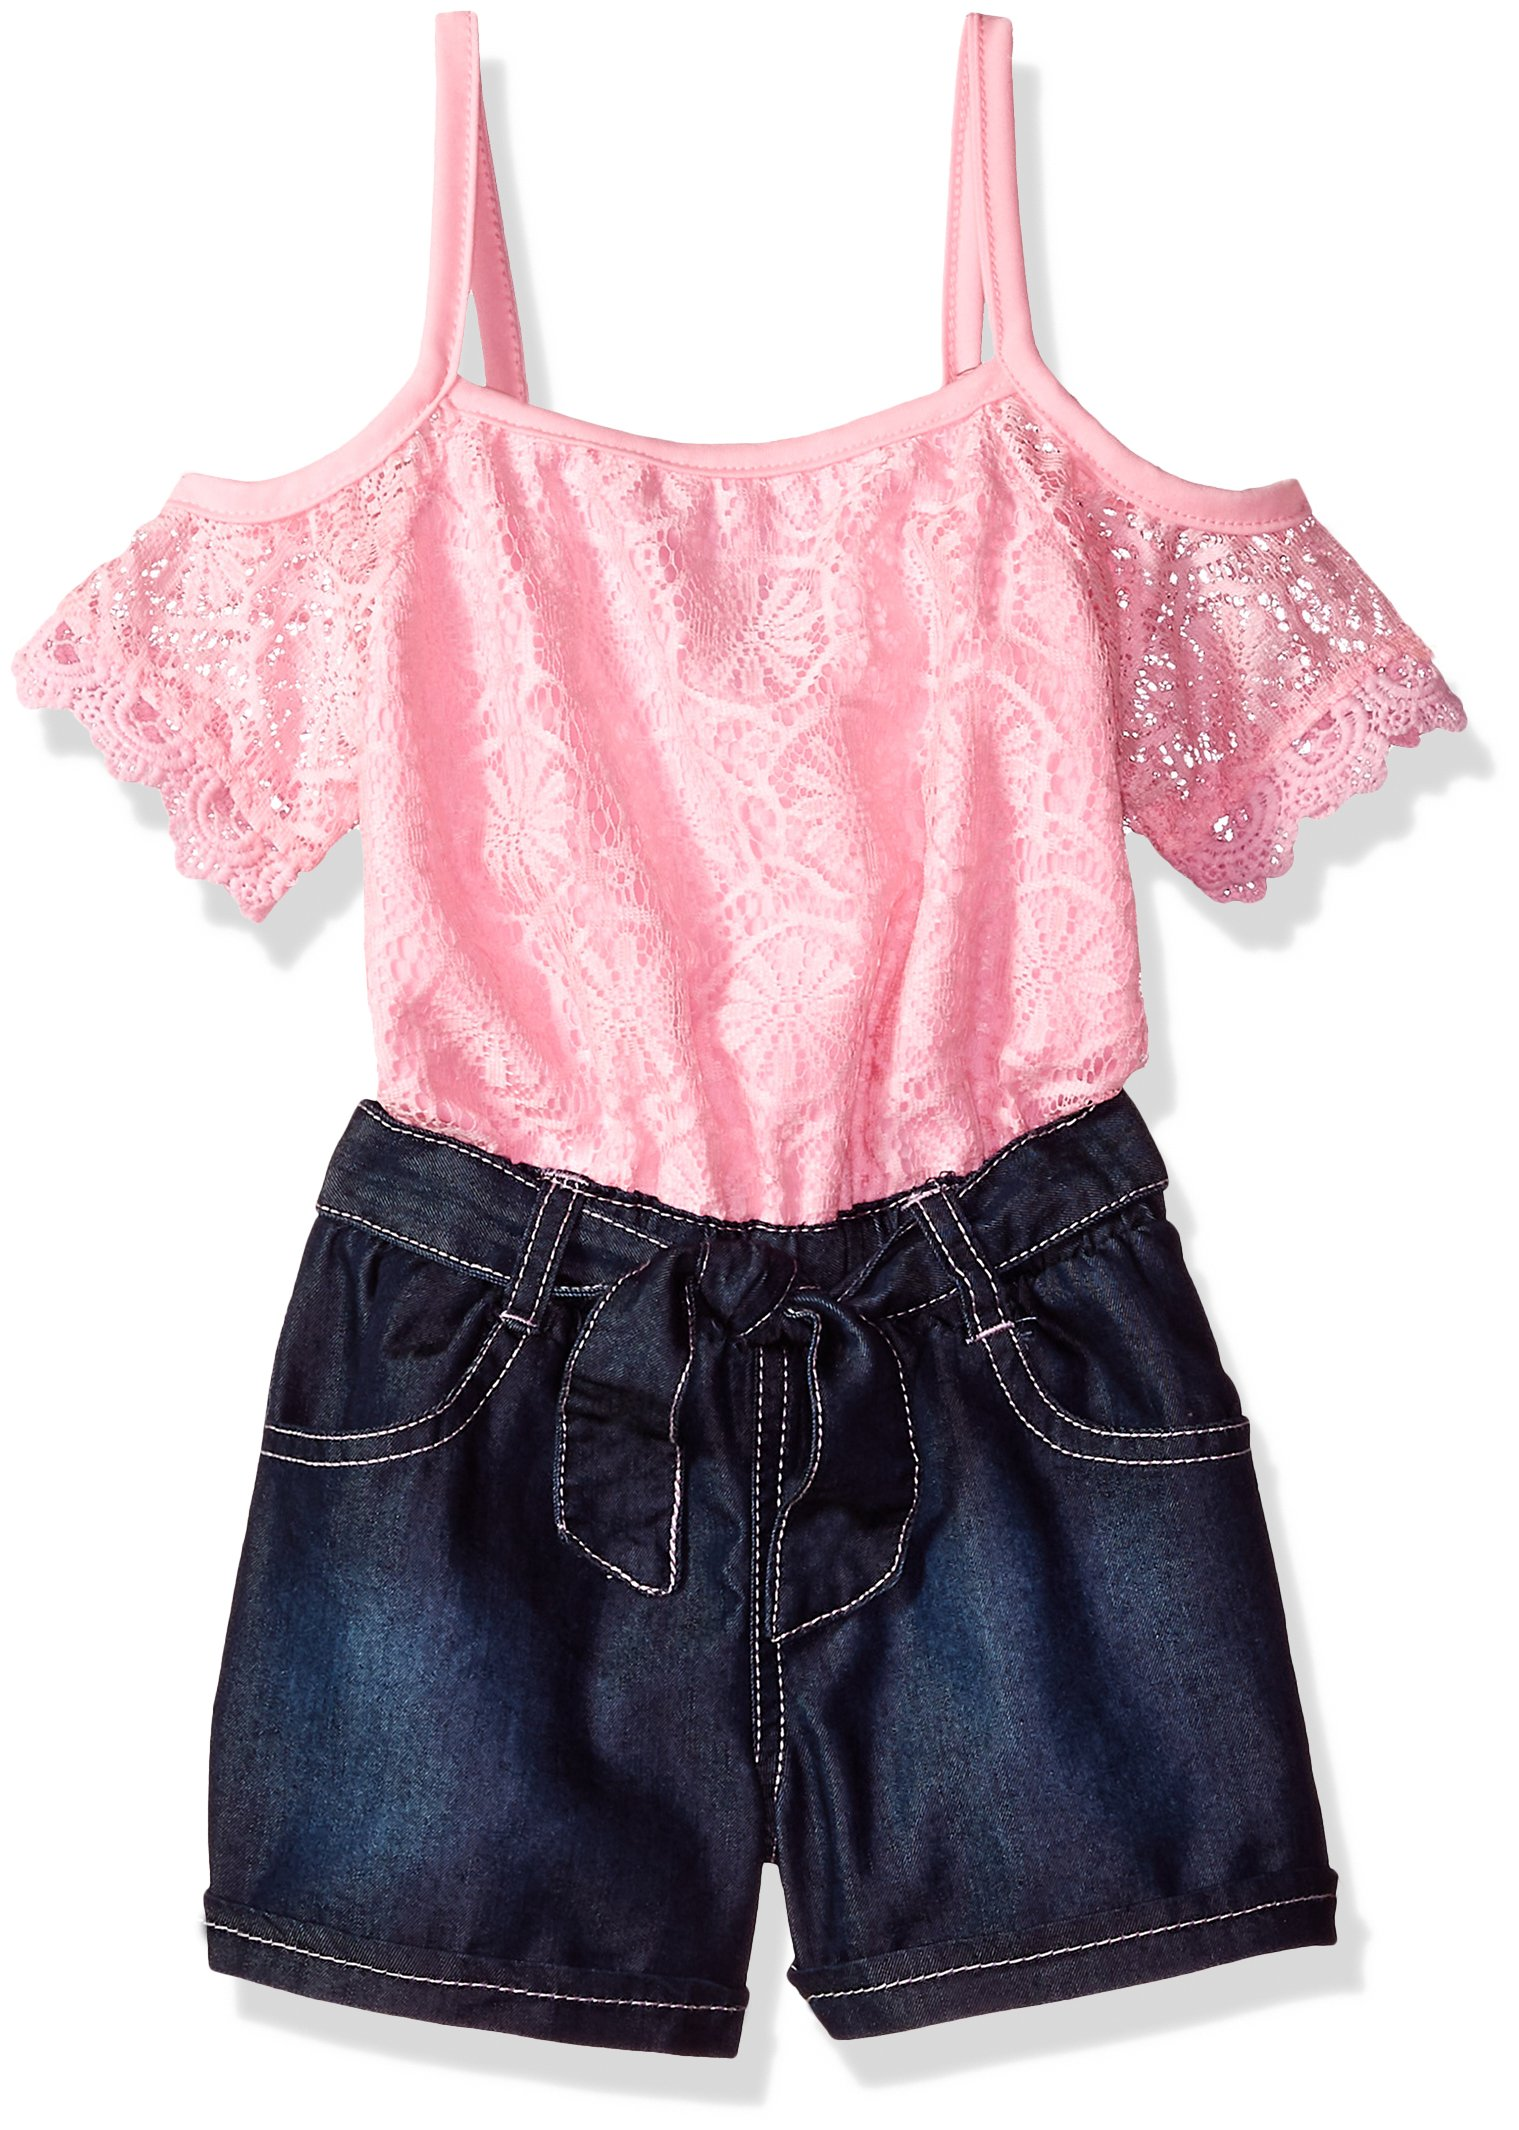 Limited Too Little Girls' Romper, Scallop Lace Edge Trim on Sleeves Light Pink, 4